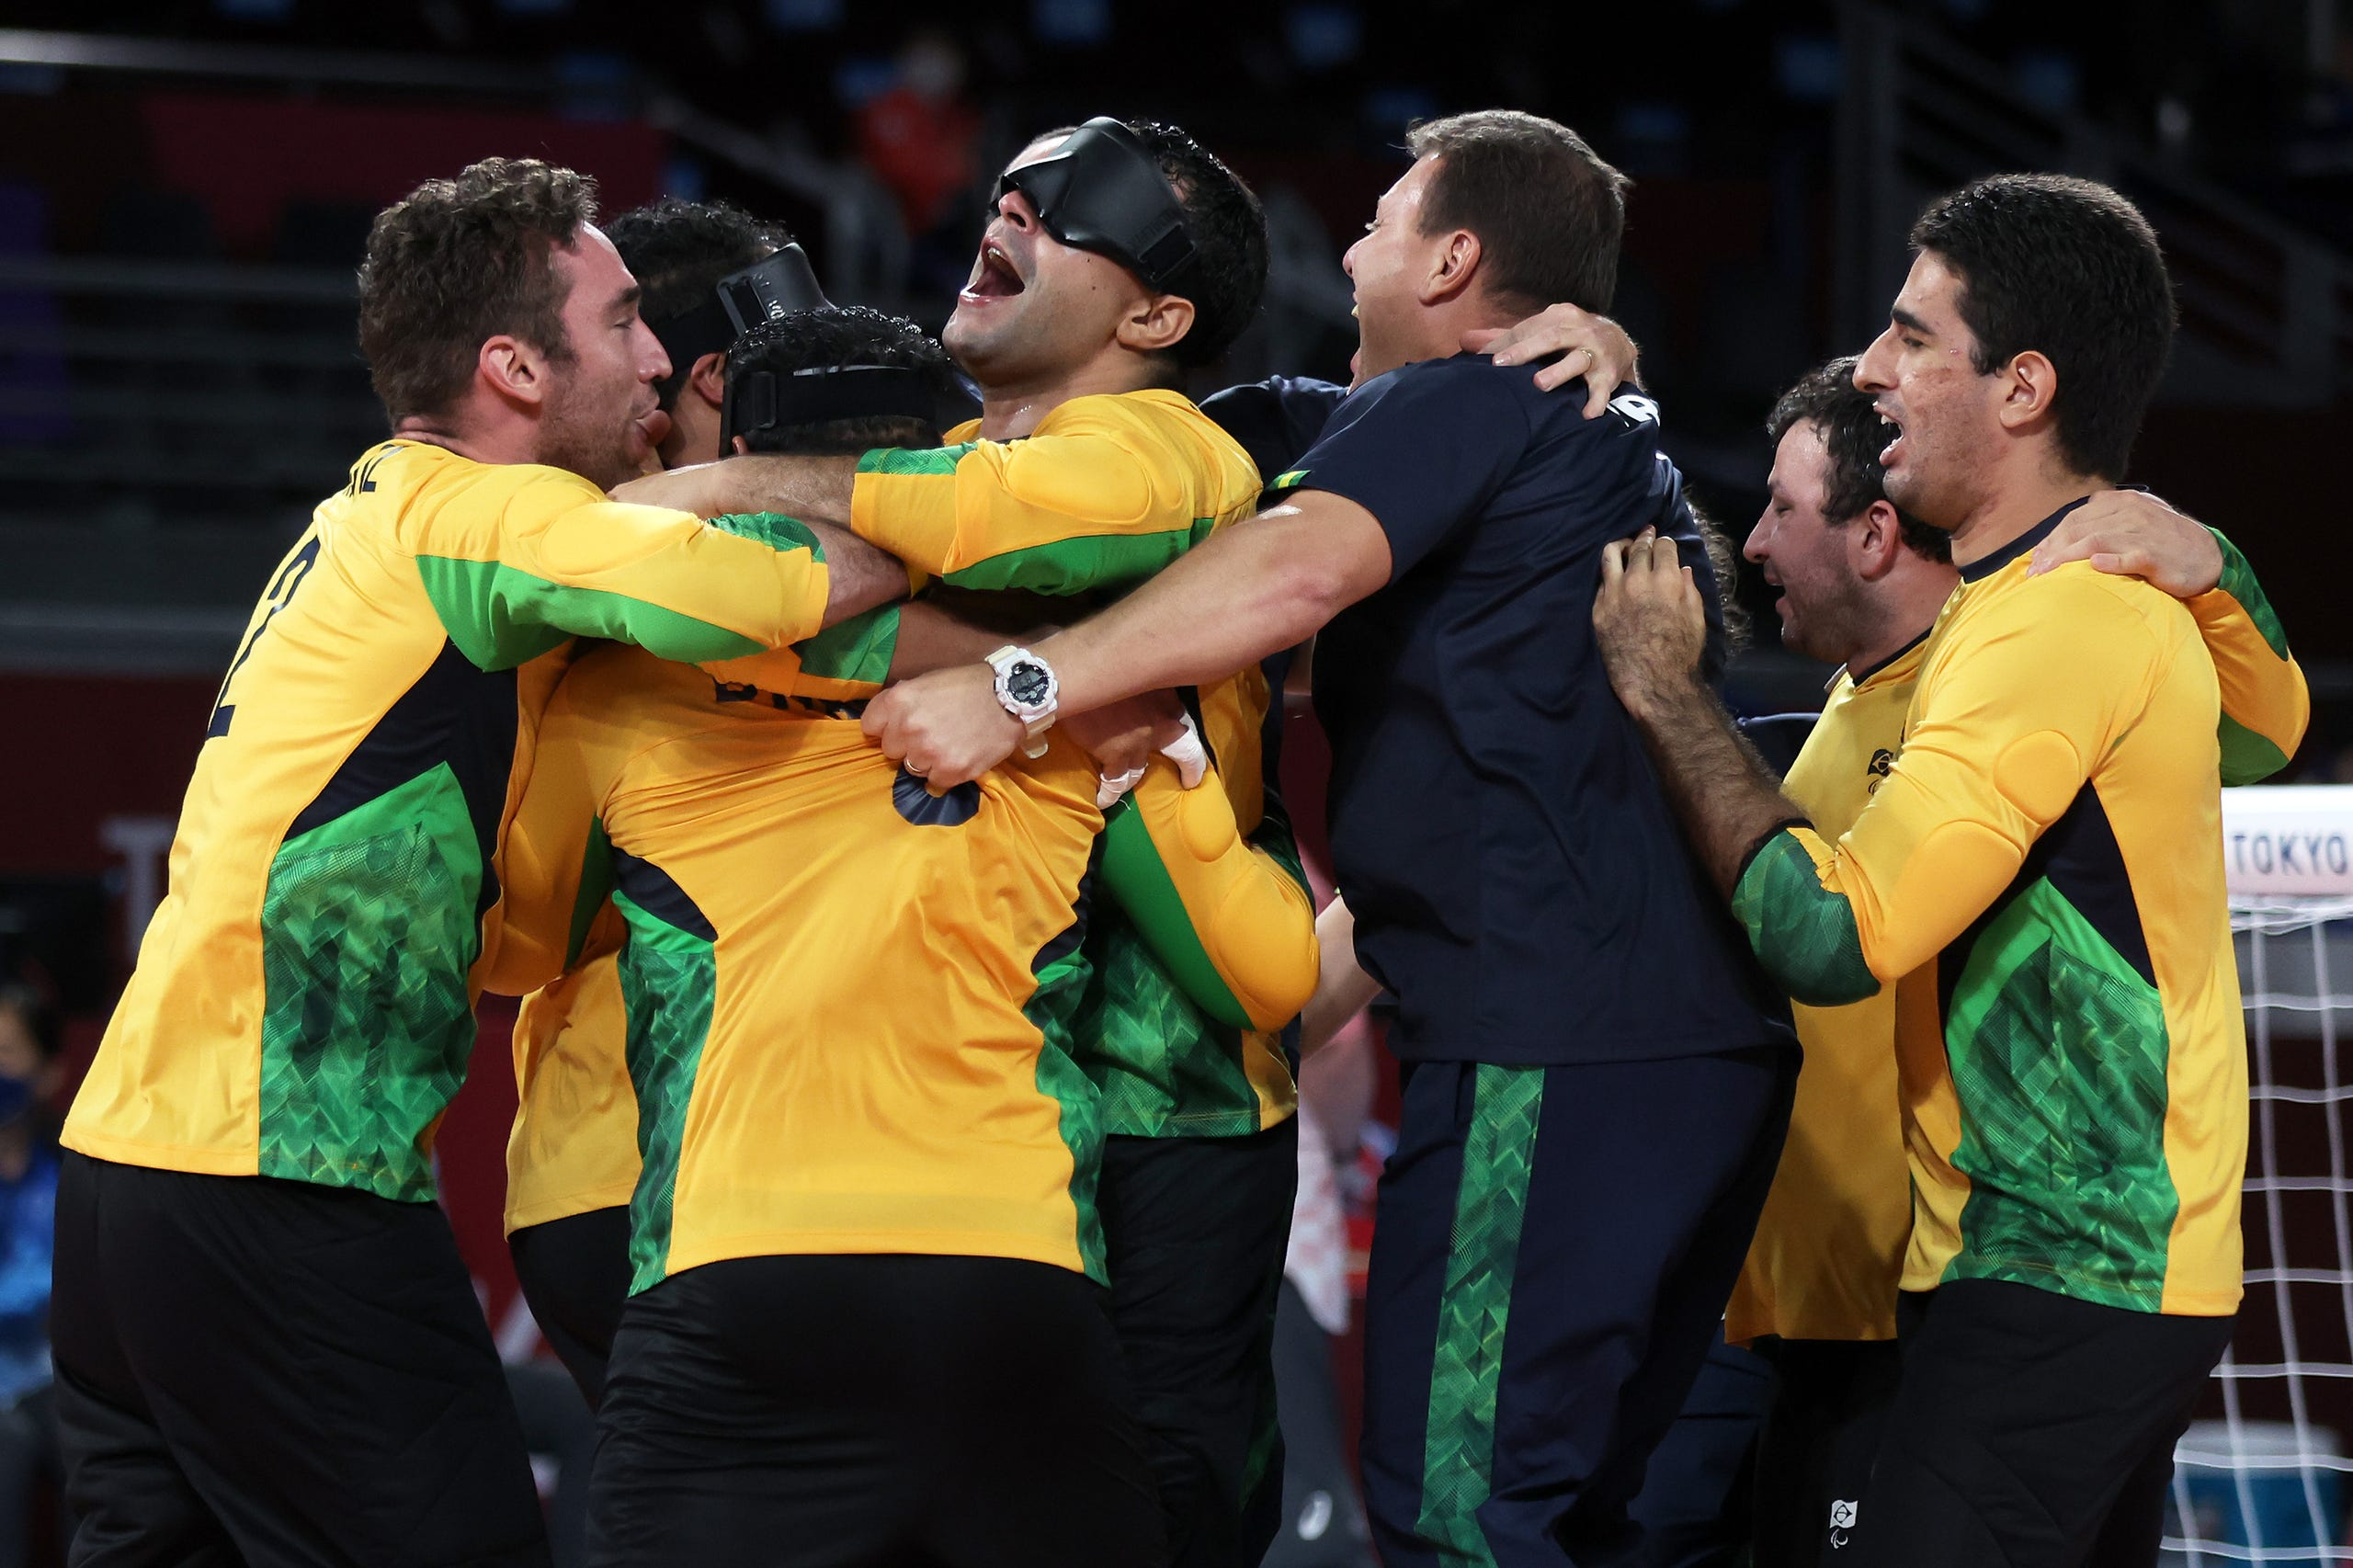 Sept. 3: Team Brazil celebrates after defeating Team China in the Goalball Men's Gold Medal match on day 10 of the Tokyo 2020 Paralympic Games at Makuhari Messe.